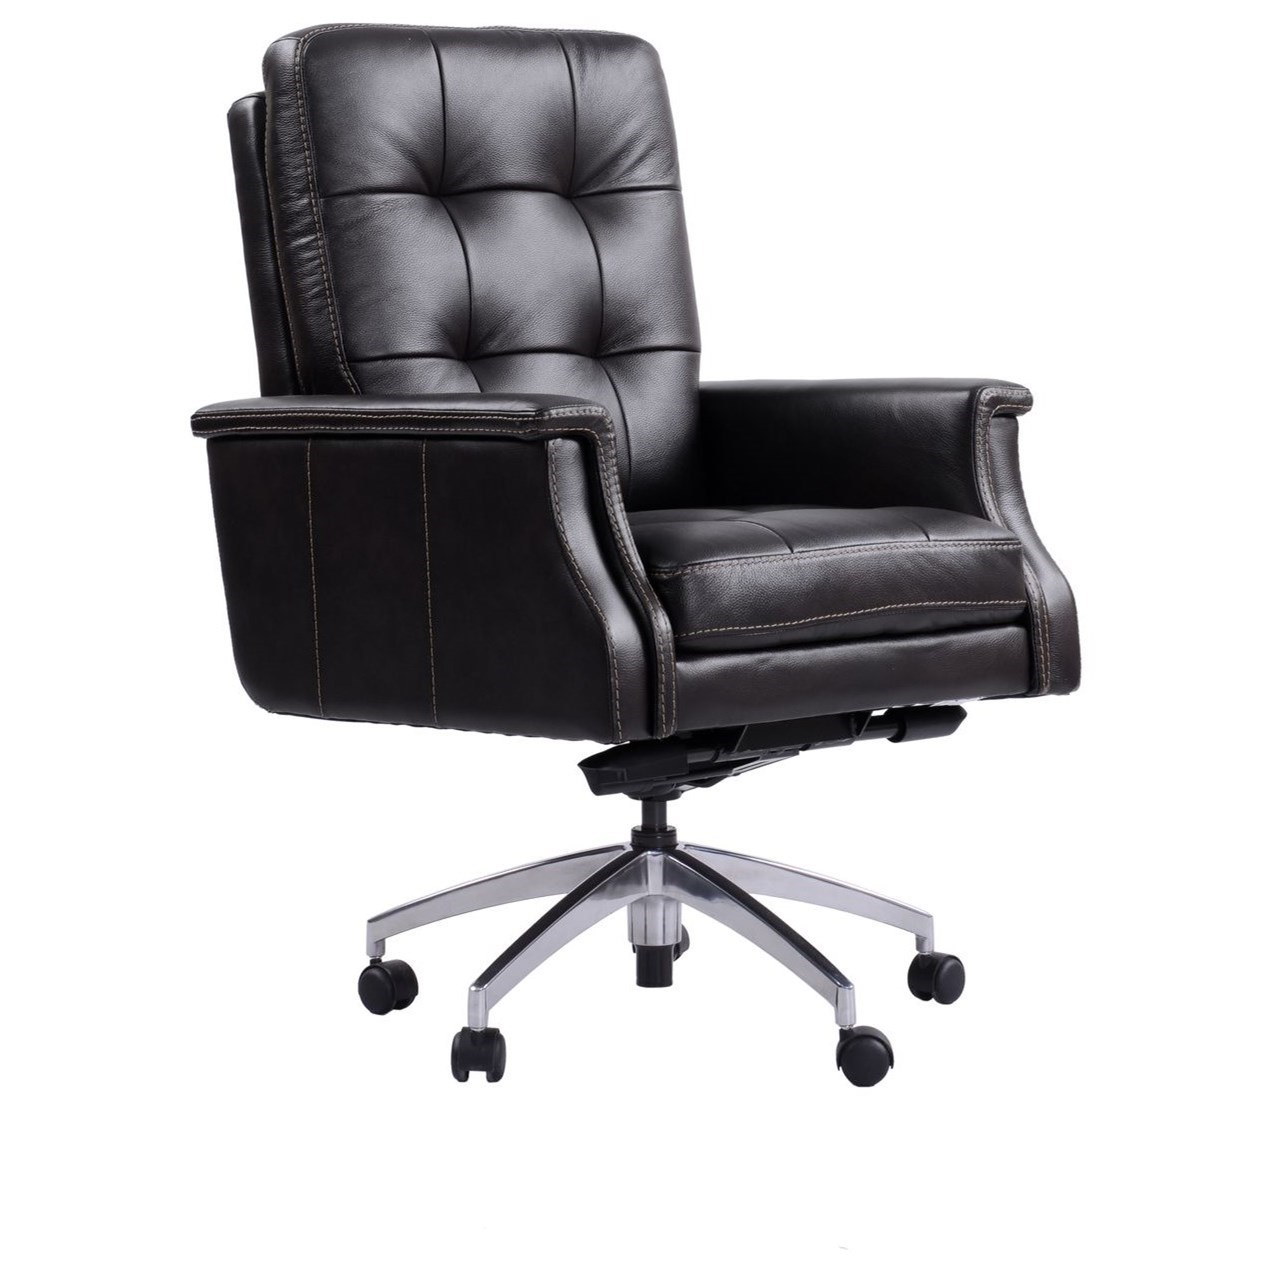 Desk Chairs Leather Desk Chair by Parker Living at Jacksonville Furniture Mart